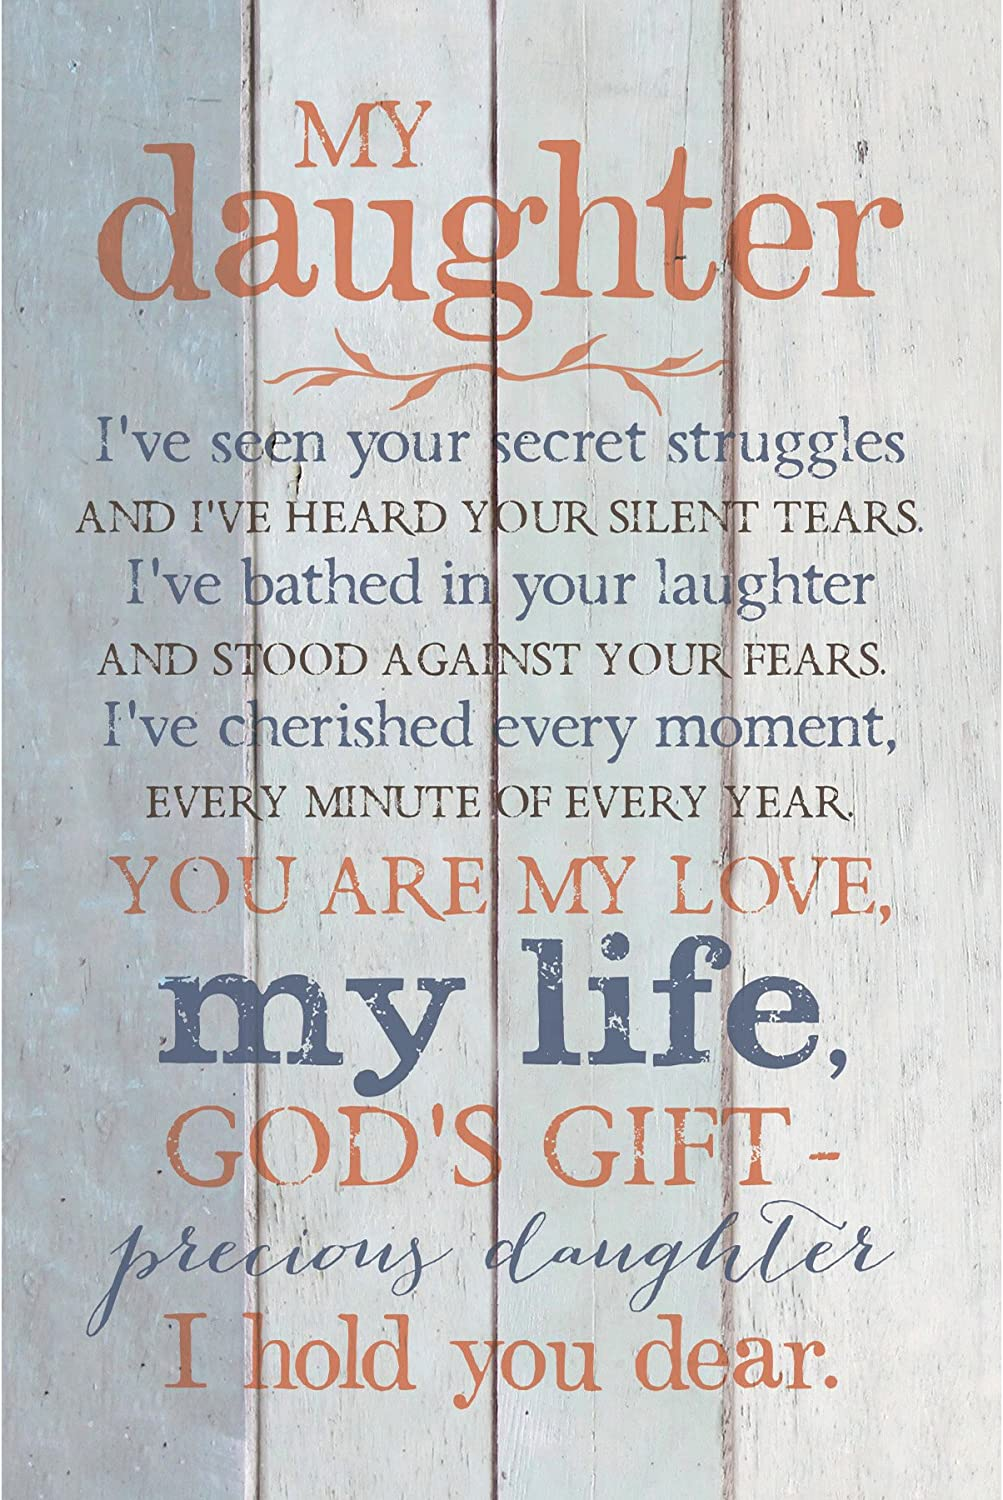 Daughter Wood Plaque with Inspiring Quotes 6x9 - Classy Vertical Frame Wall & Tabletop Decoration | Easel & Hanging Hook | Christian Family Religious Home Decor Saying | My Daughter